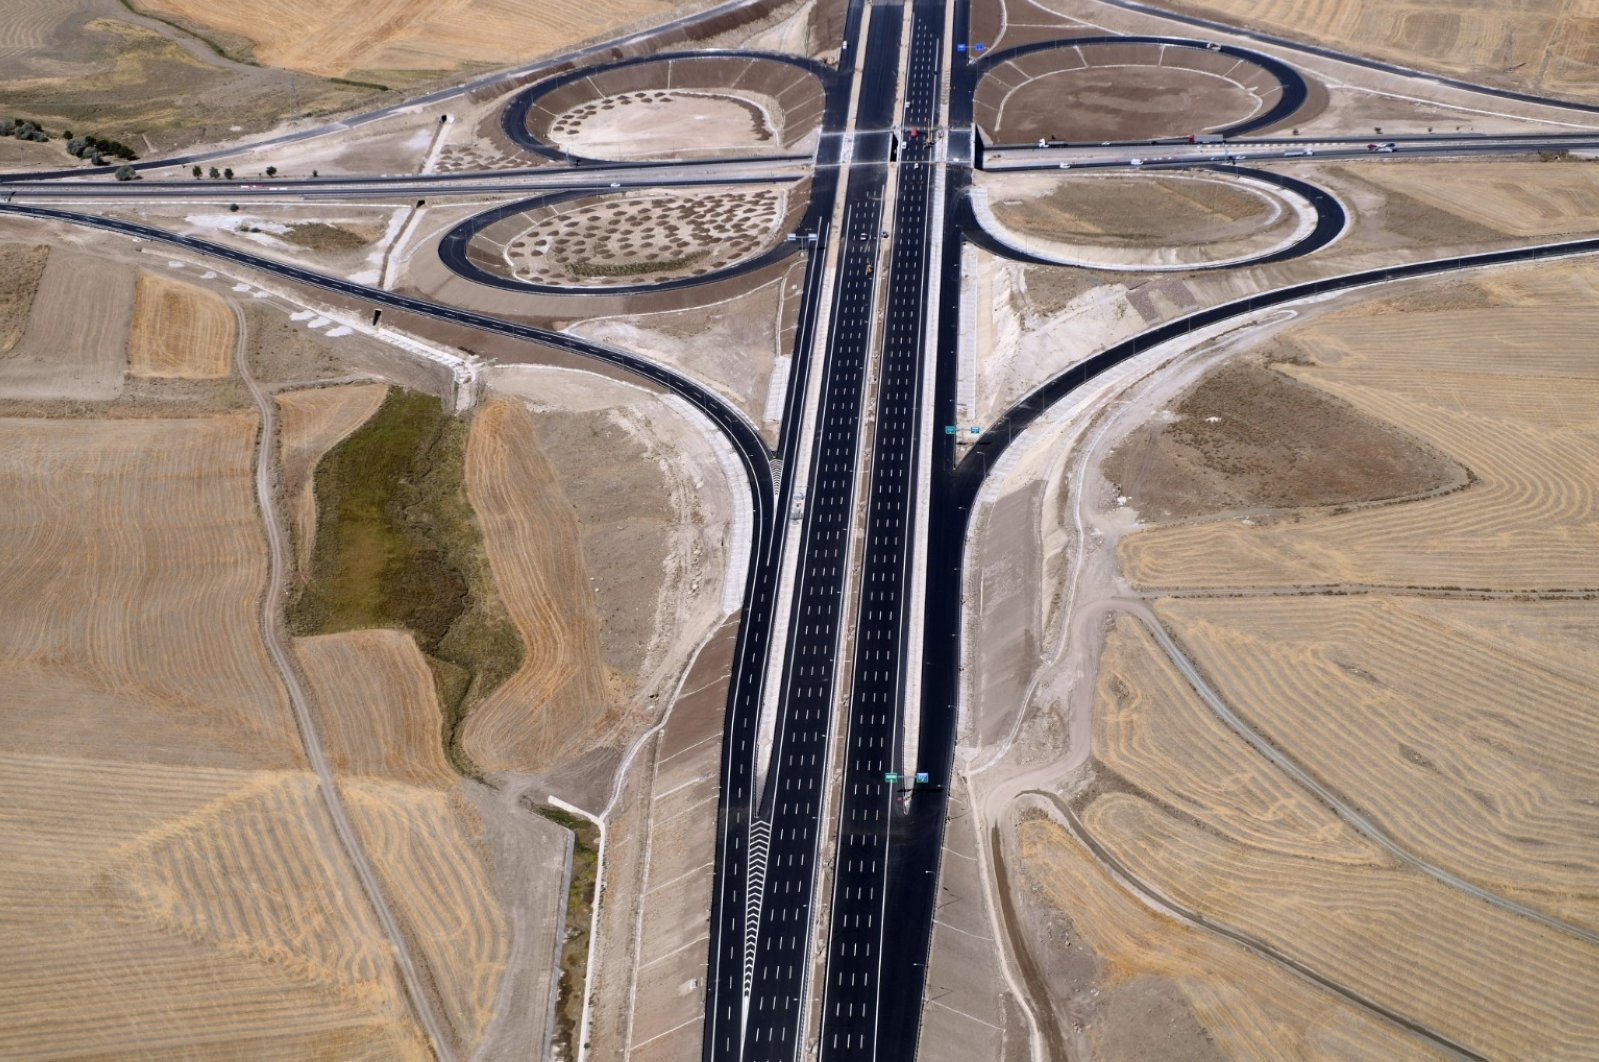 """The 330-kilometer """"smart"""" highway connecting the capital Ankara with central Niğde province will be inaugurated on Sept. 4 by President Recep Tayyip Erdoğan. (DHA Photo)"""